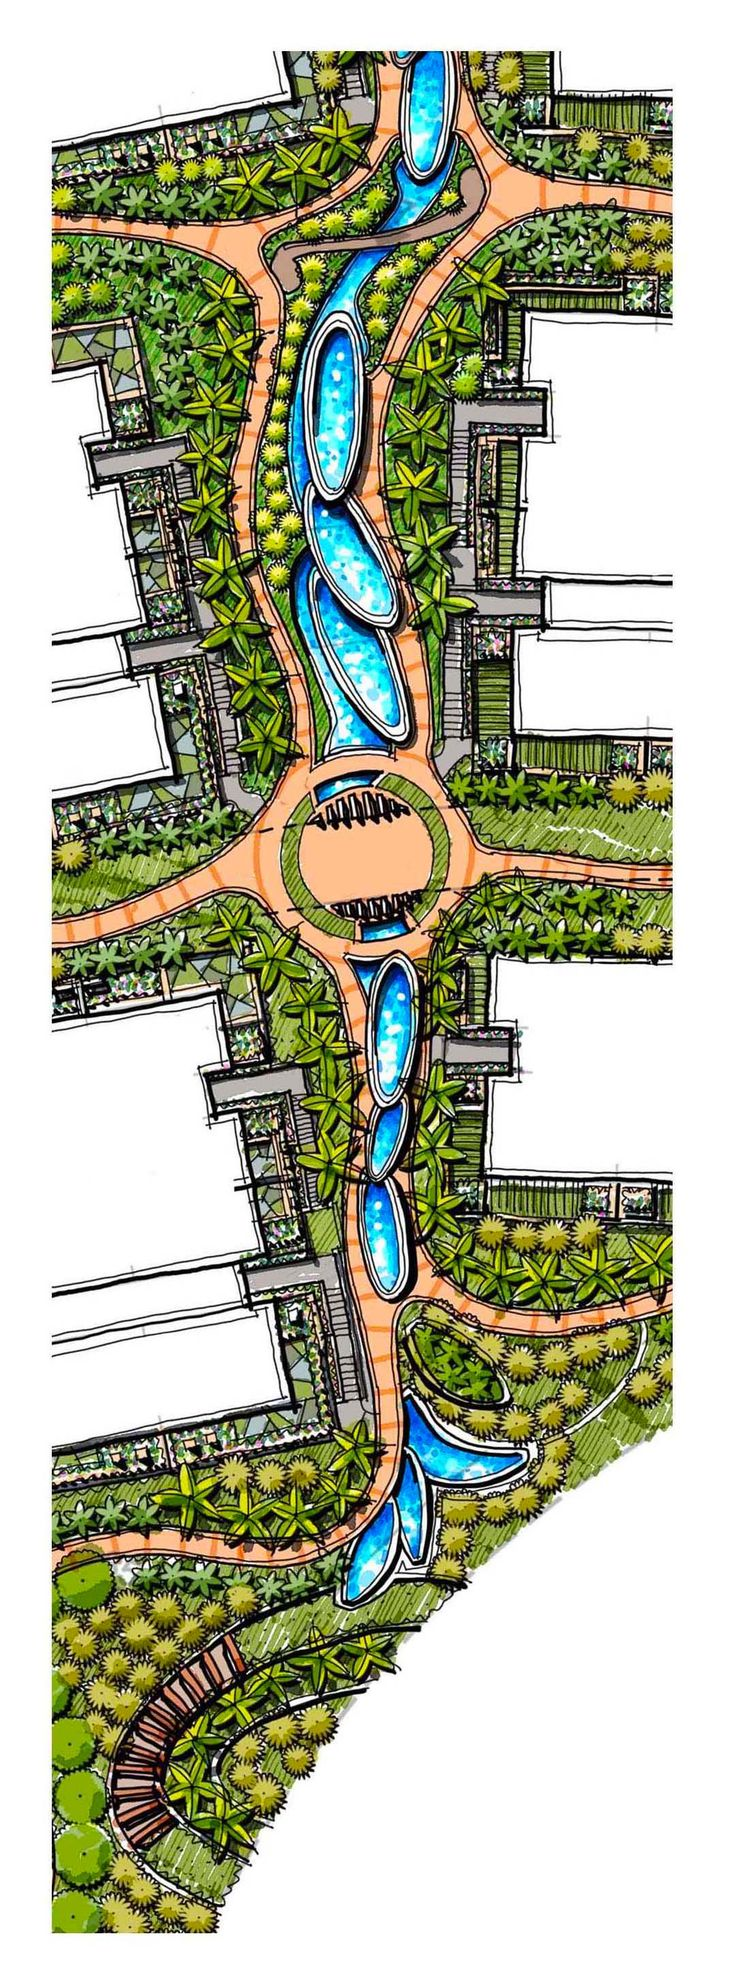 Plan Blow up of cascading Water Feature, Freehand Landscape Master Plan